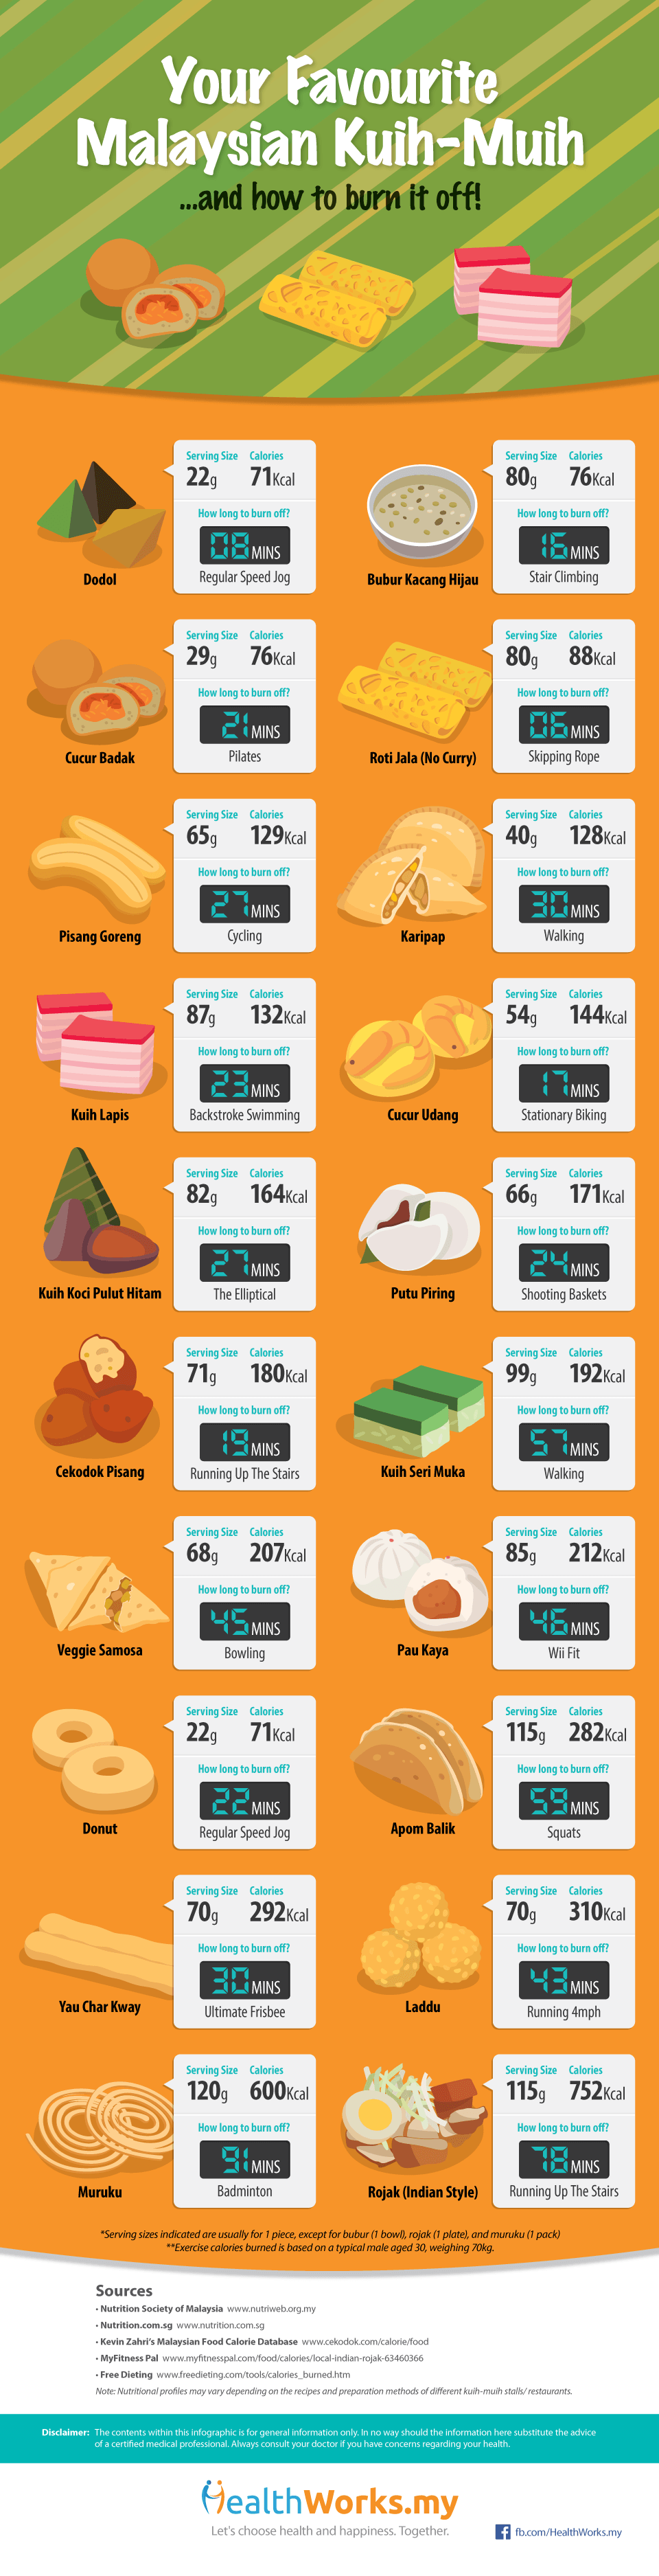 Infographic: Your Favourite Malaysian Kuih-Muih (And How You Can Burn it Off)